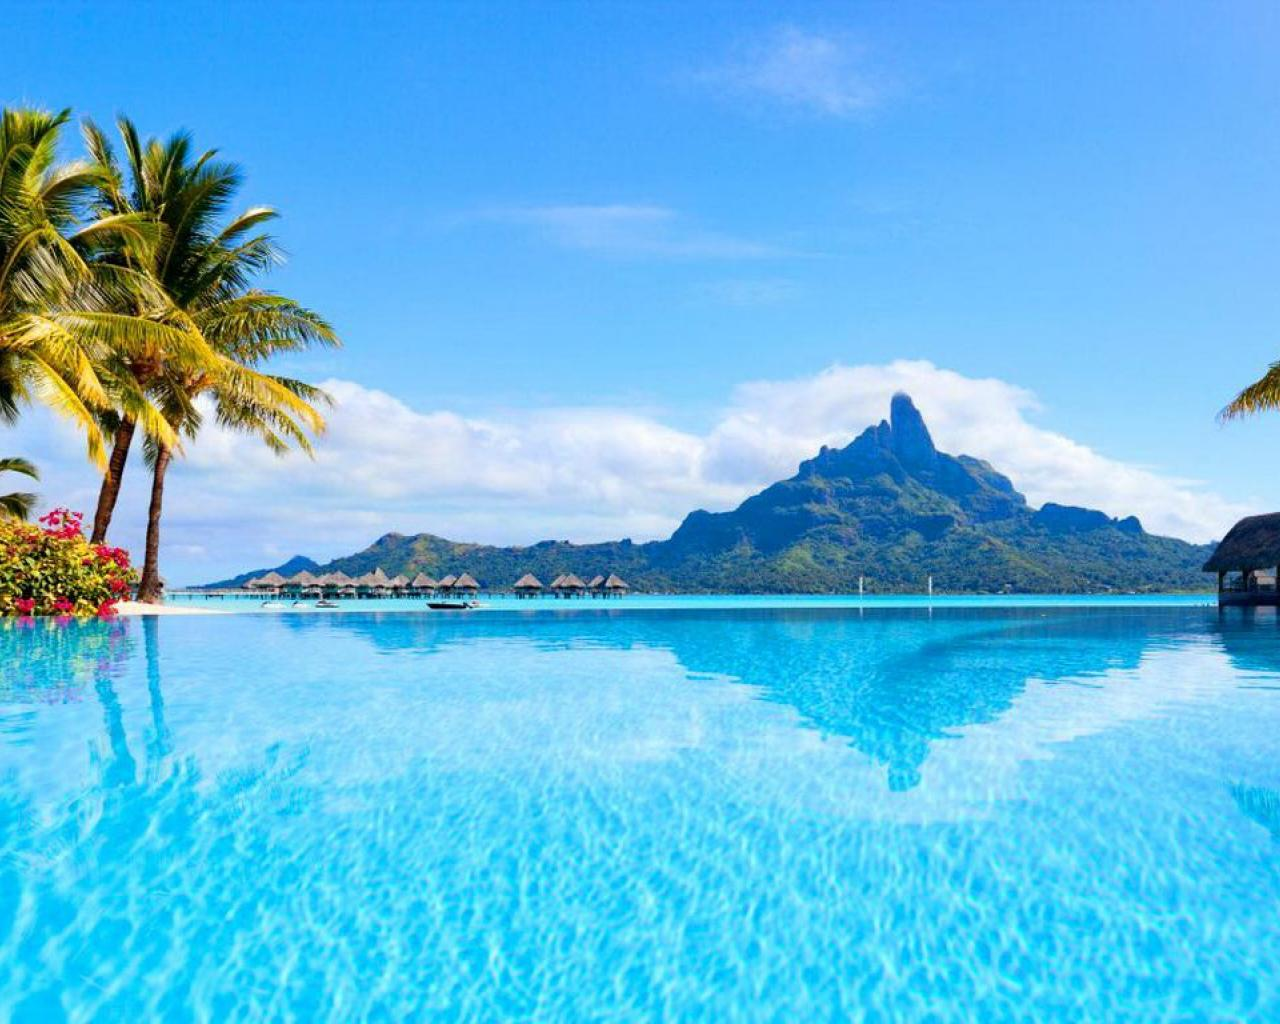 bora bora   107891   High Quality and Resolution Wallpapers 1280x1024